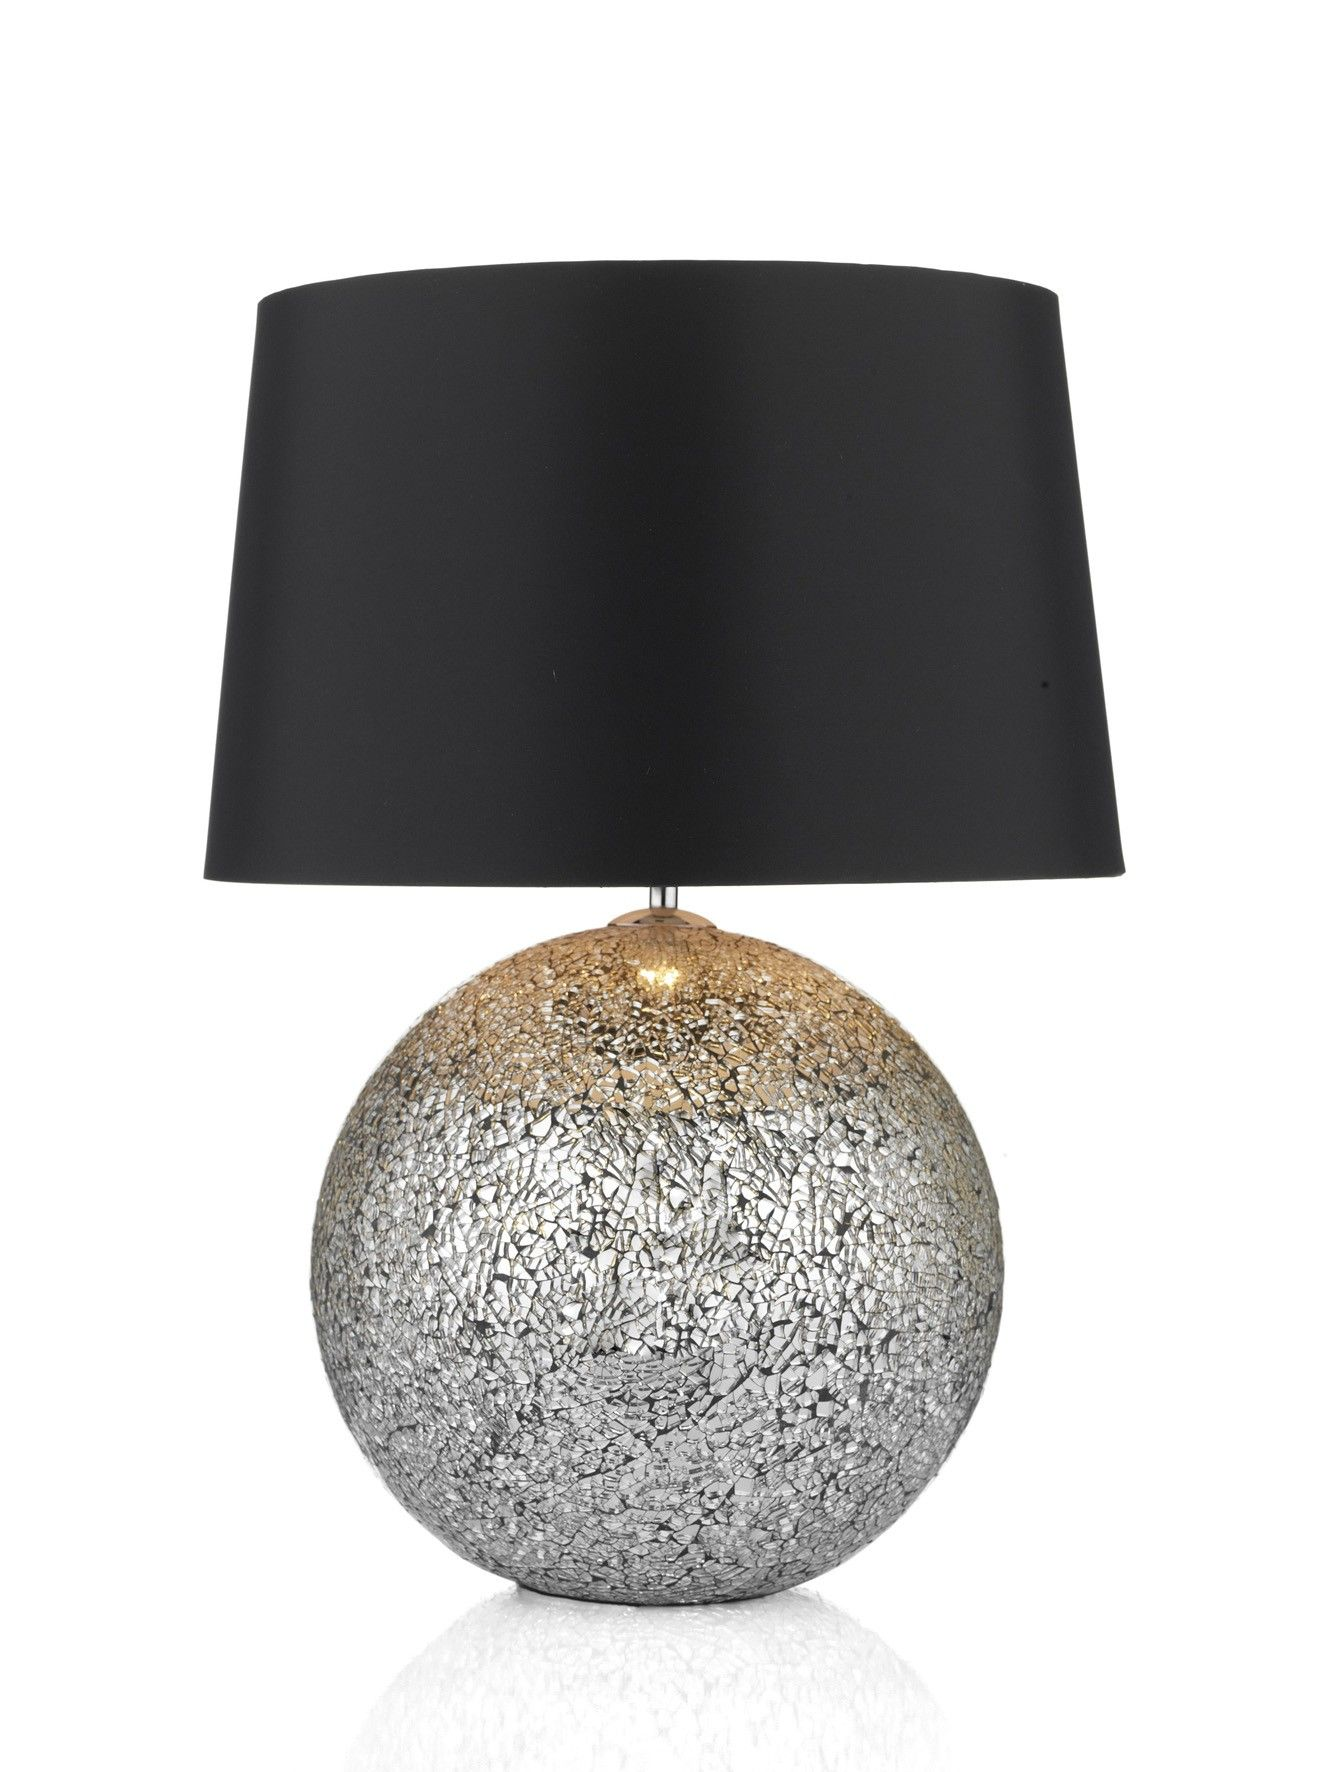 Dar Lighting Glitter Ball Table Lamp Medium Complete With Black Shade Table Lamp Large Table Lamps Black Table Lamps